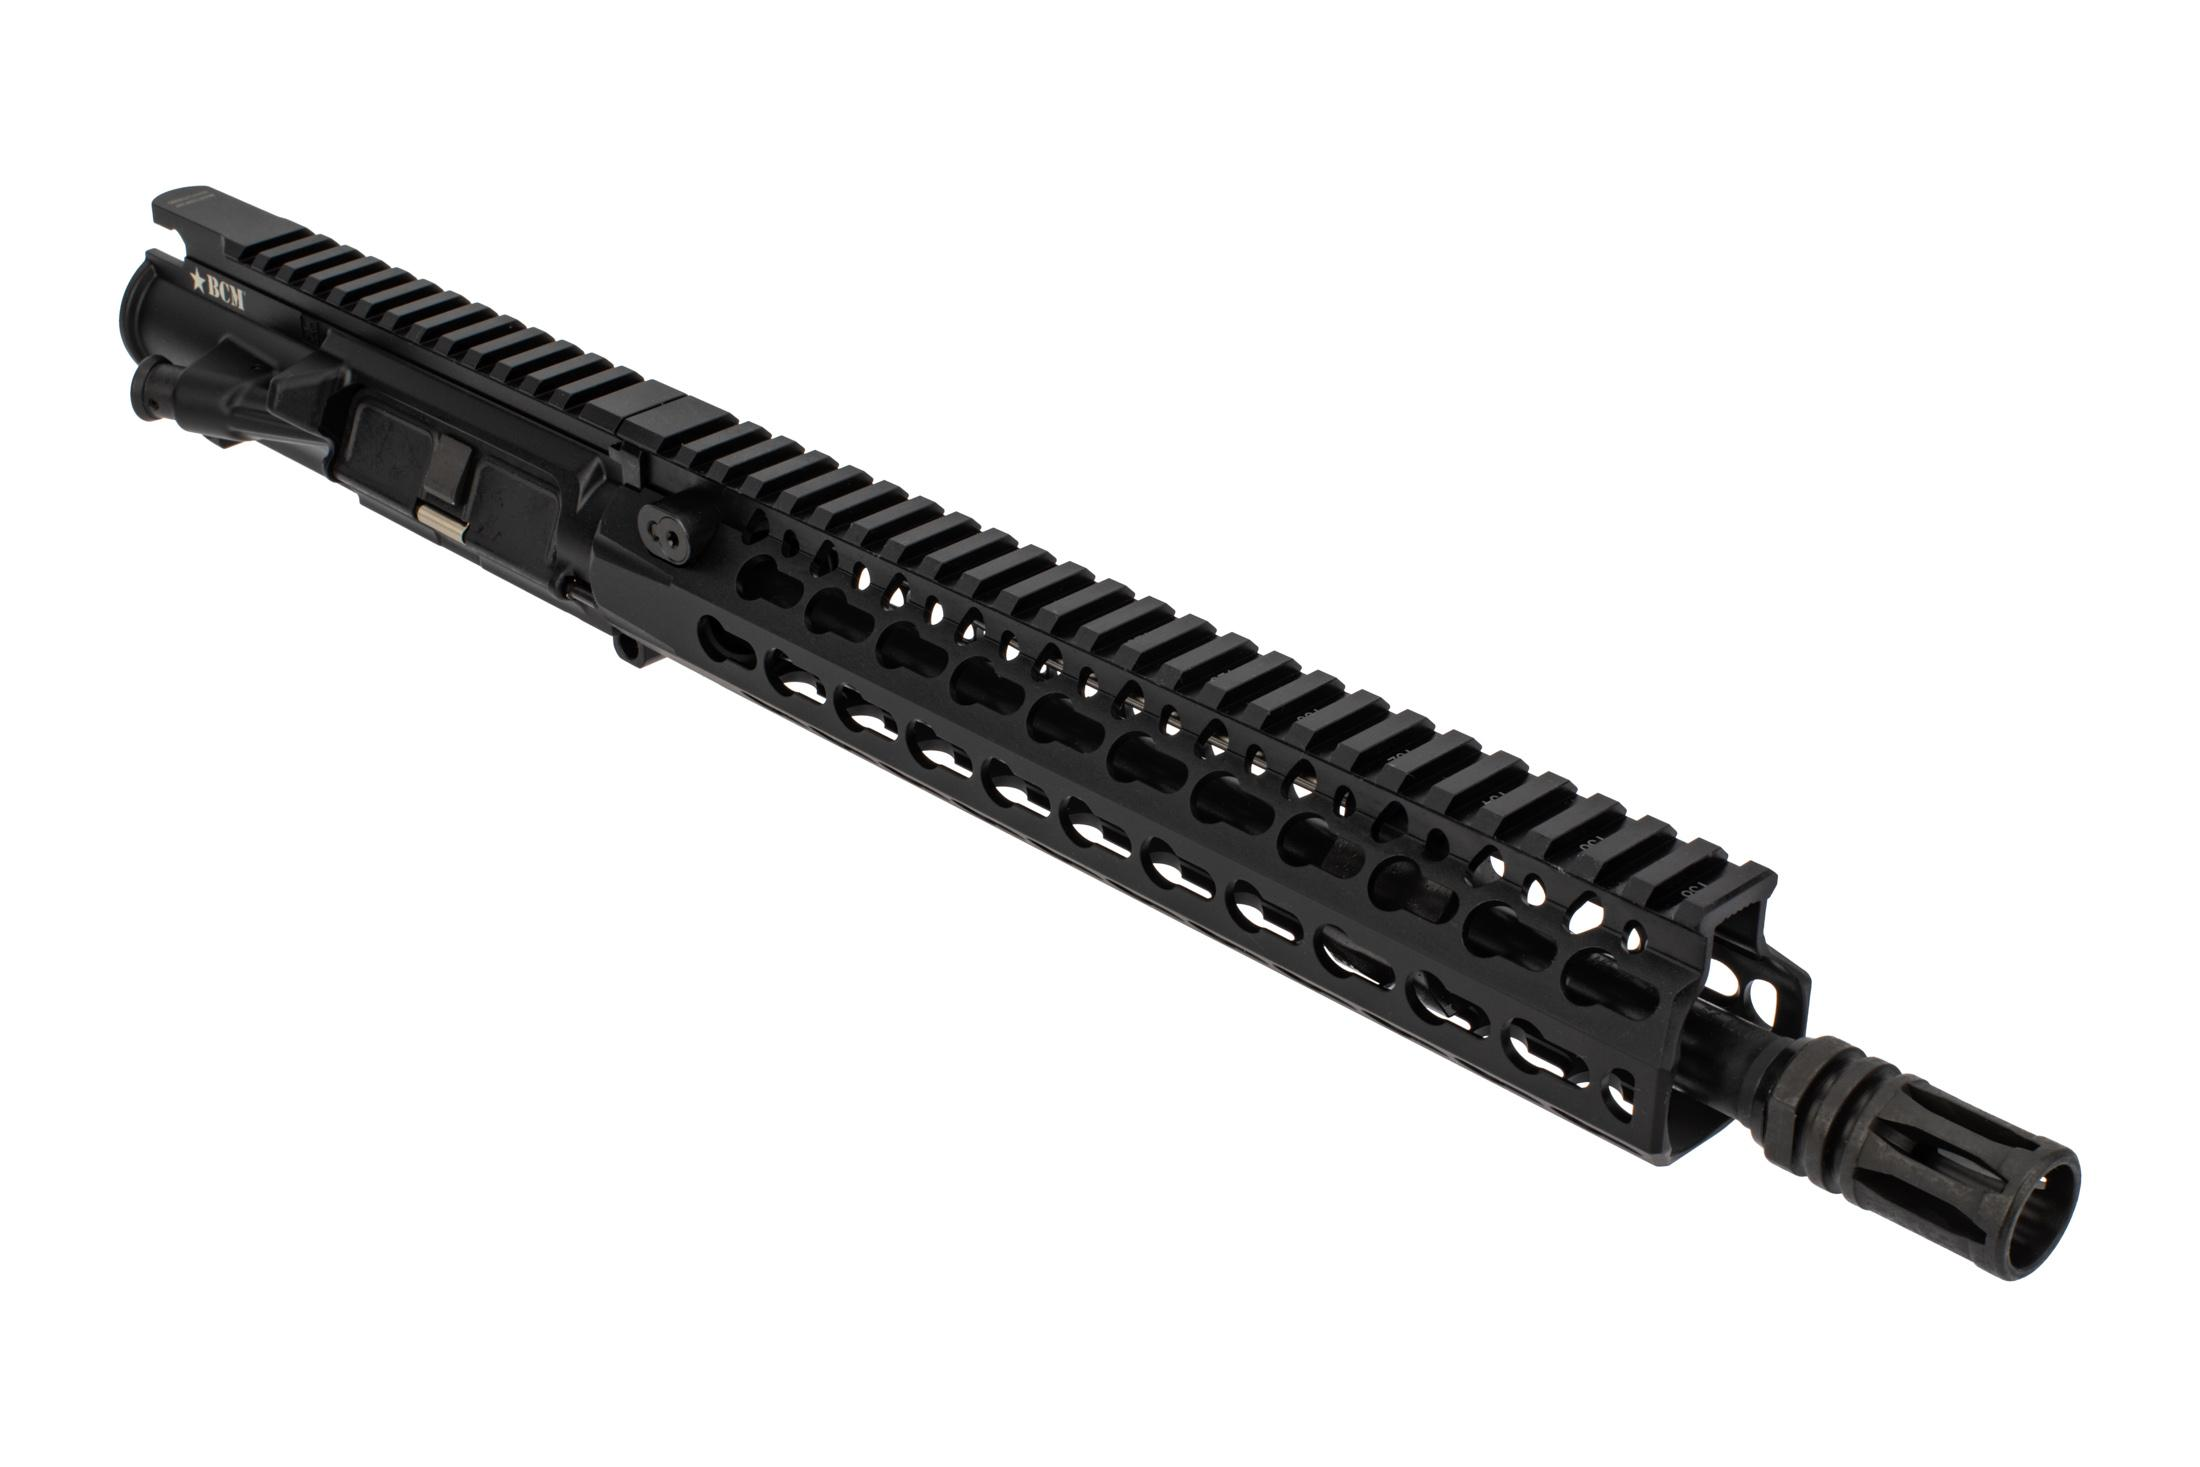 Bravo Company Manufacturing MK2 Enhanced Lightweight barreled upper with KMR handguard and 11.5 inch barrel